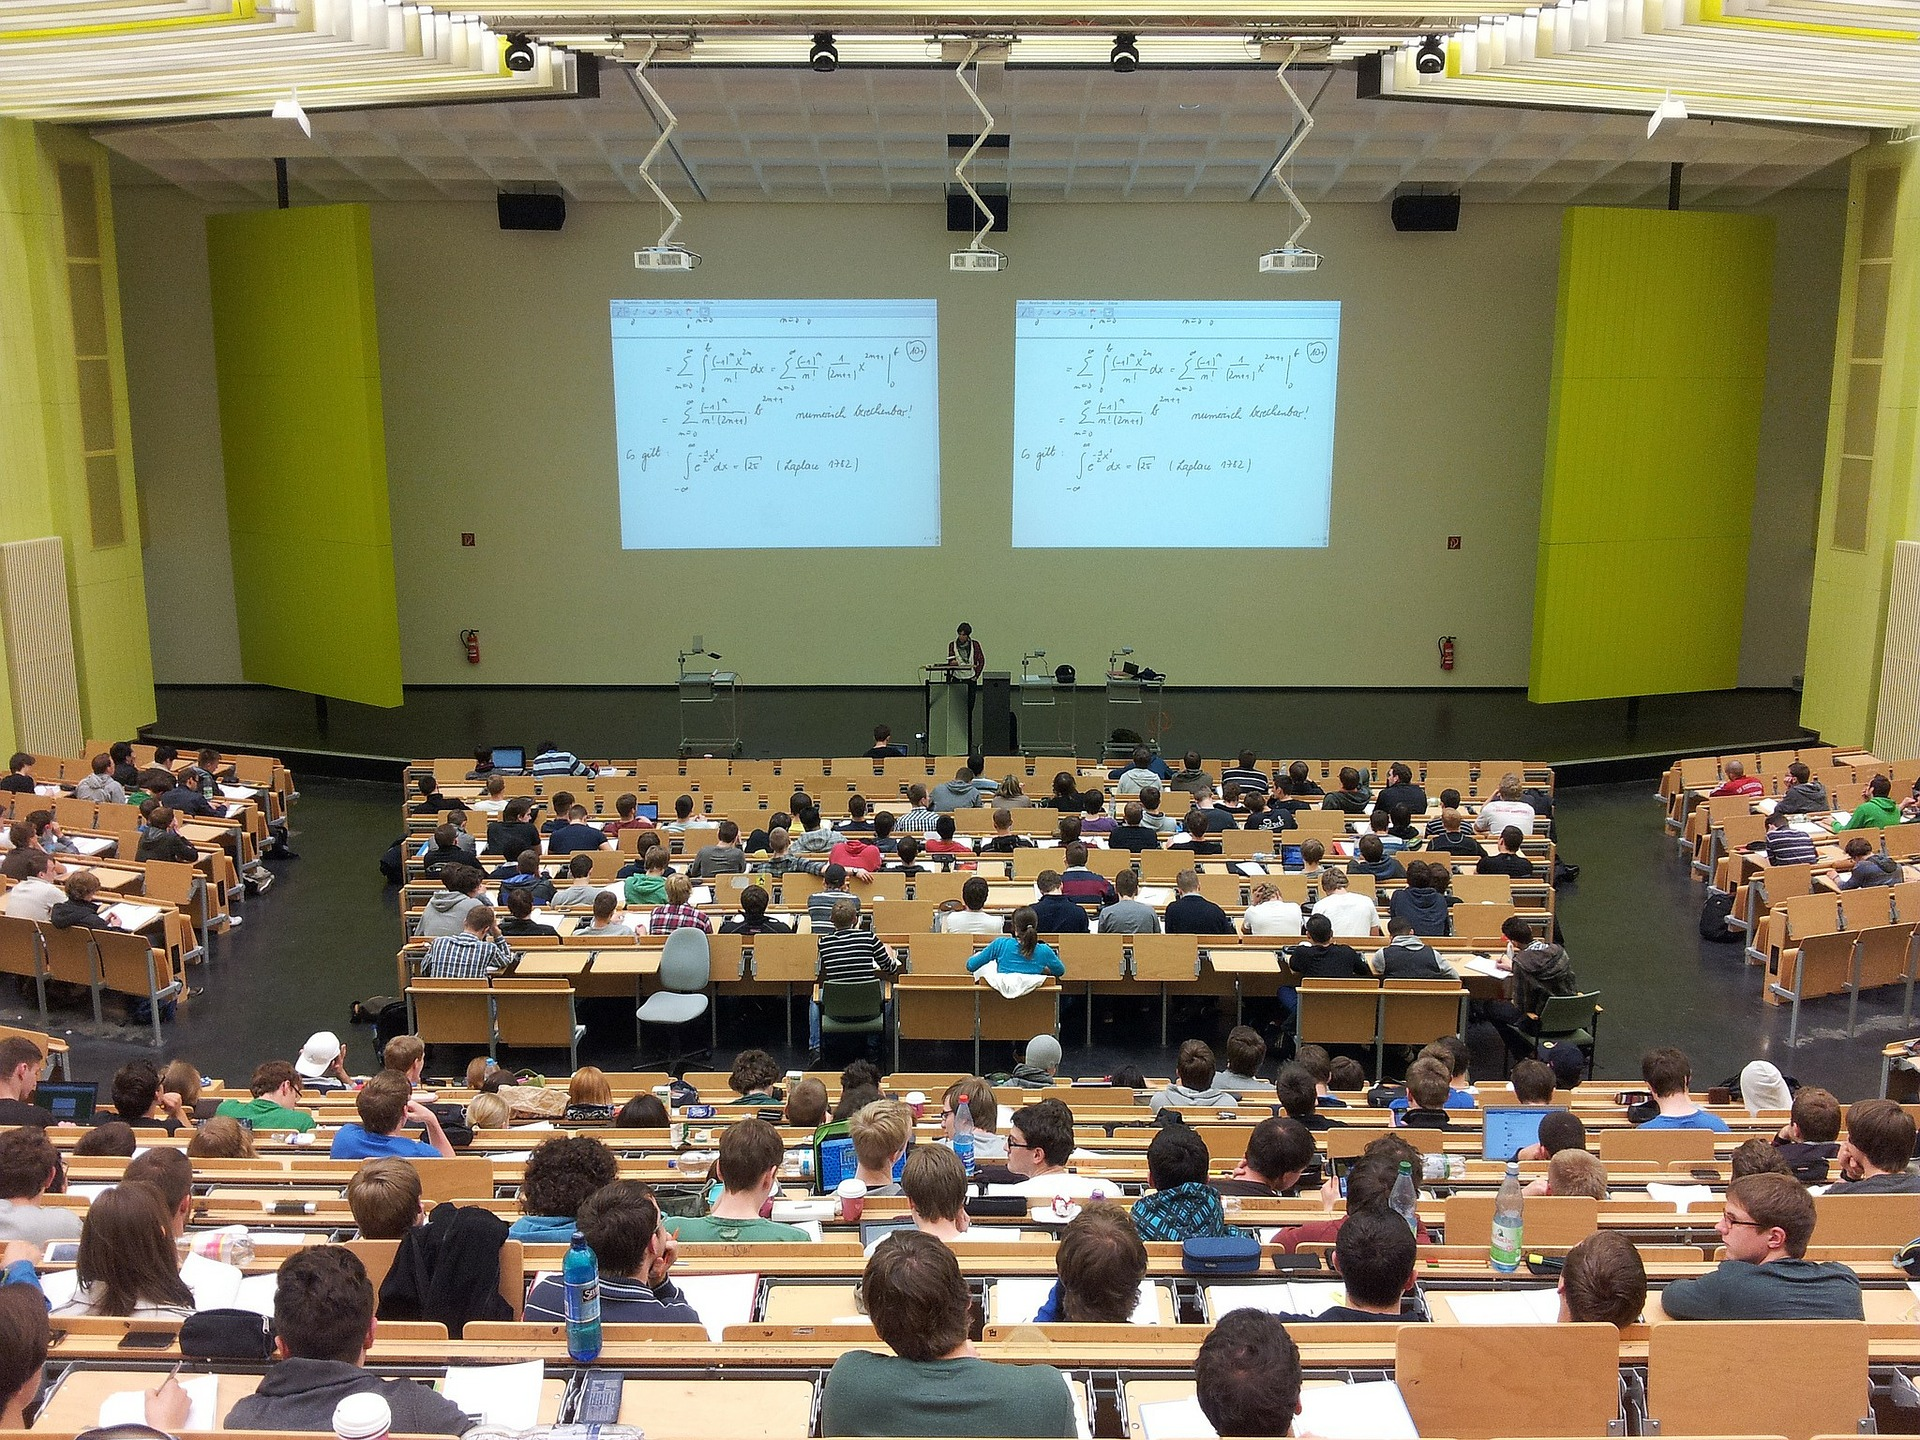 lecture room of university students sitting